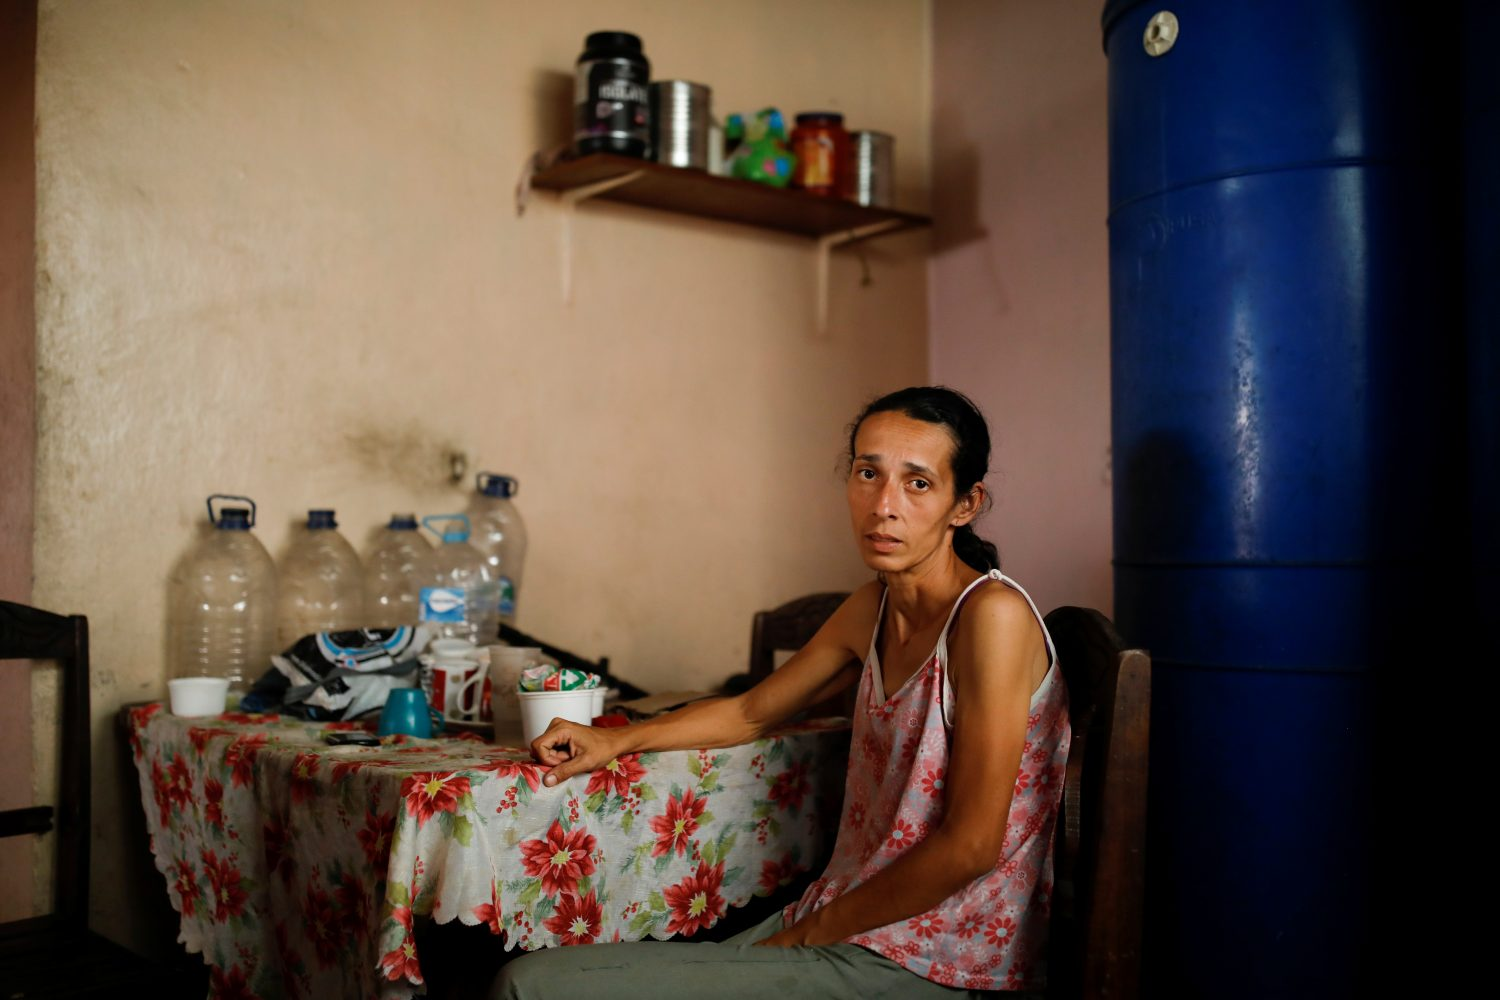 Yaneidi Guzman, 38, poses for a picture at her home in Caracas, Venezuela, February 17, 2019. REUTERS/Carlos Garcia Rawlins